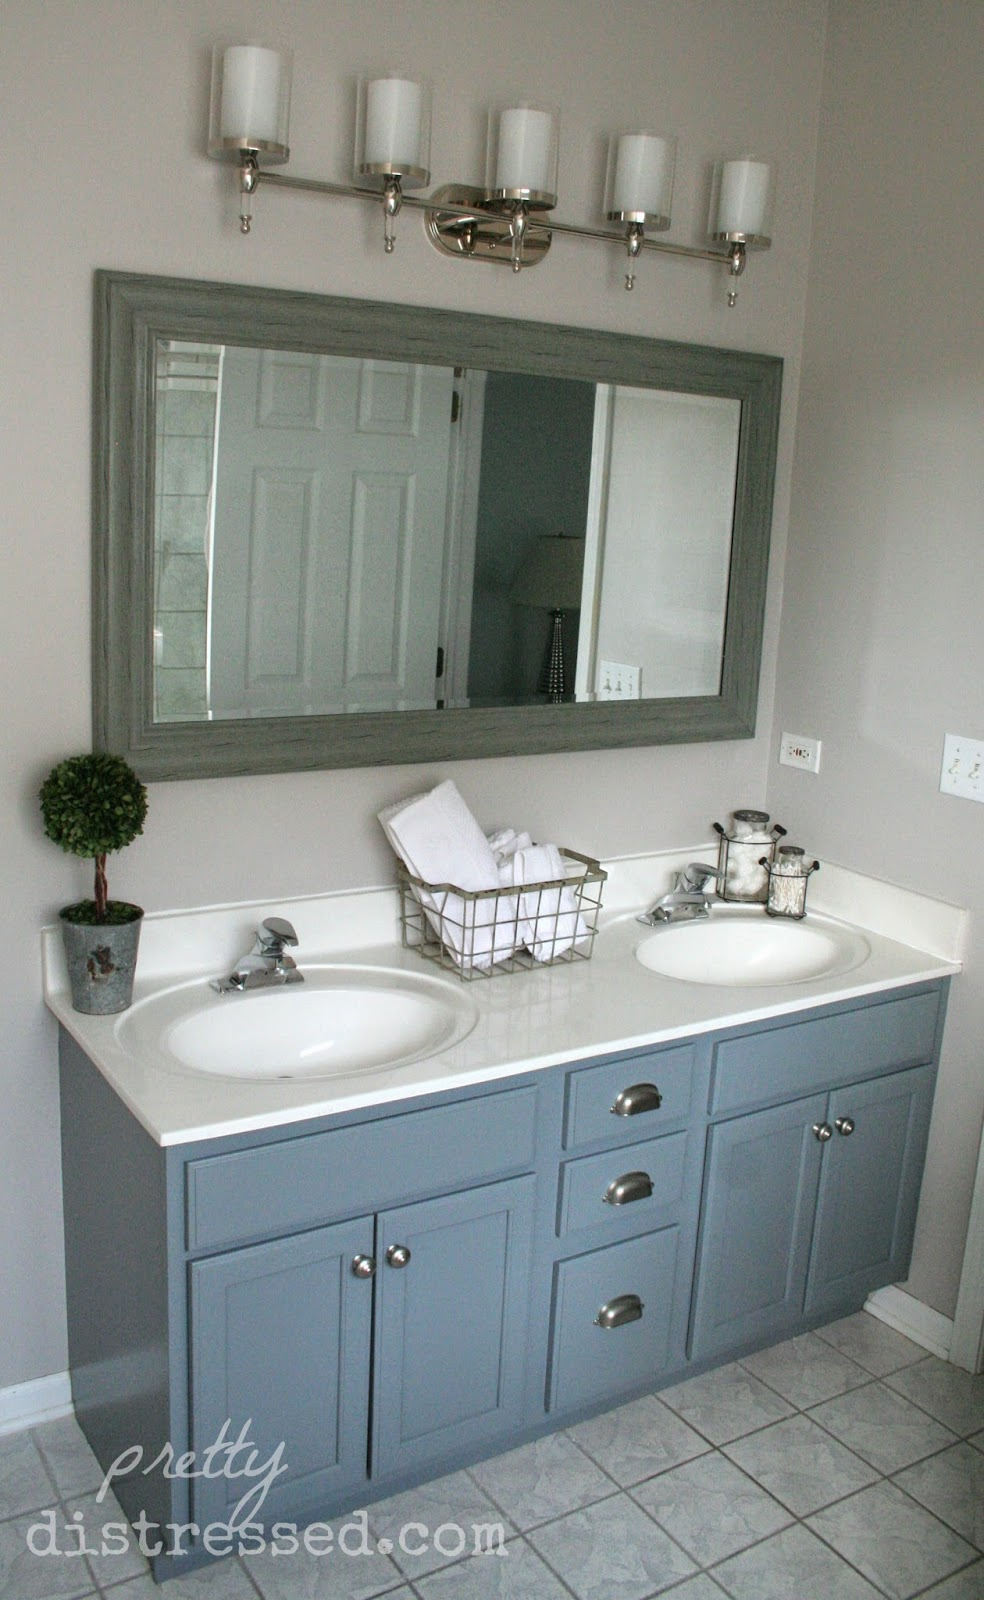 How to paint bathroom cabinets - One